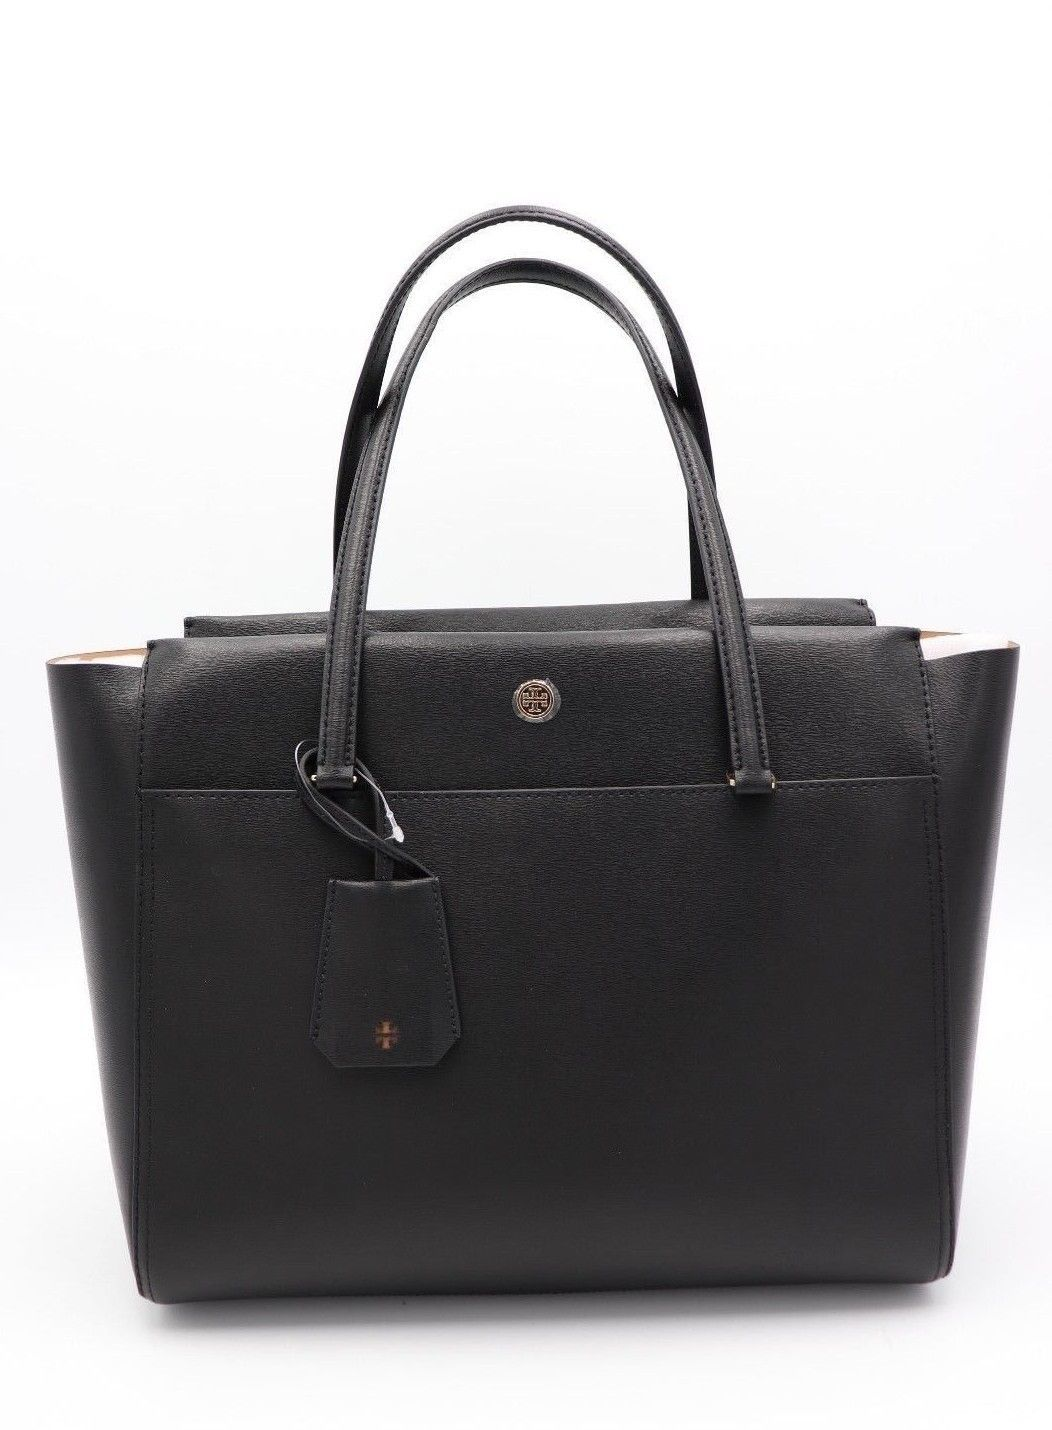 589c61a494bd New Tory Burch Parker Black Leather Tote and 50 similar items. 57